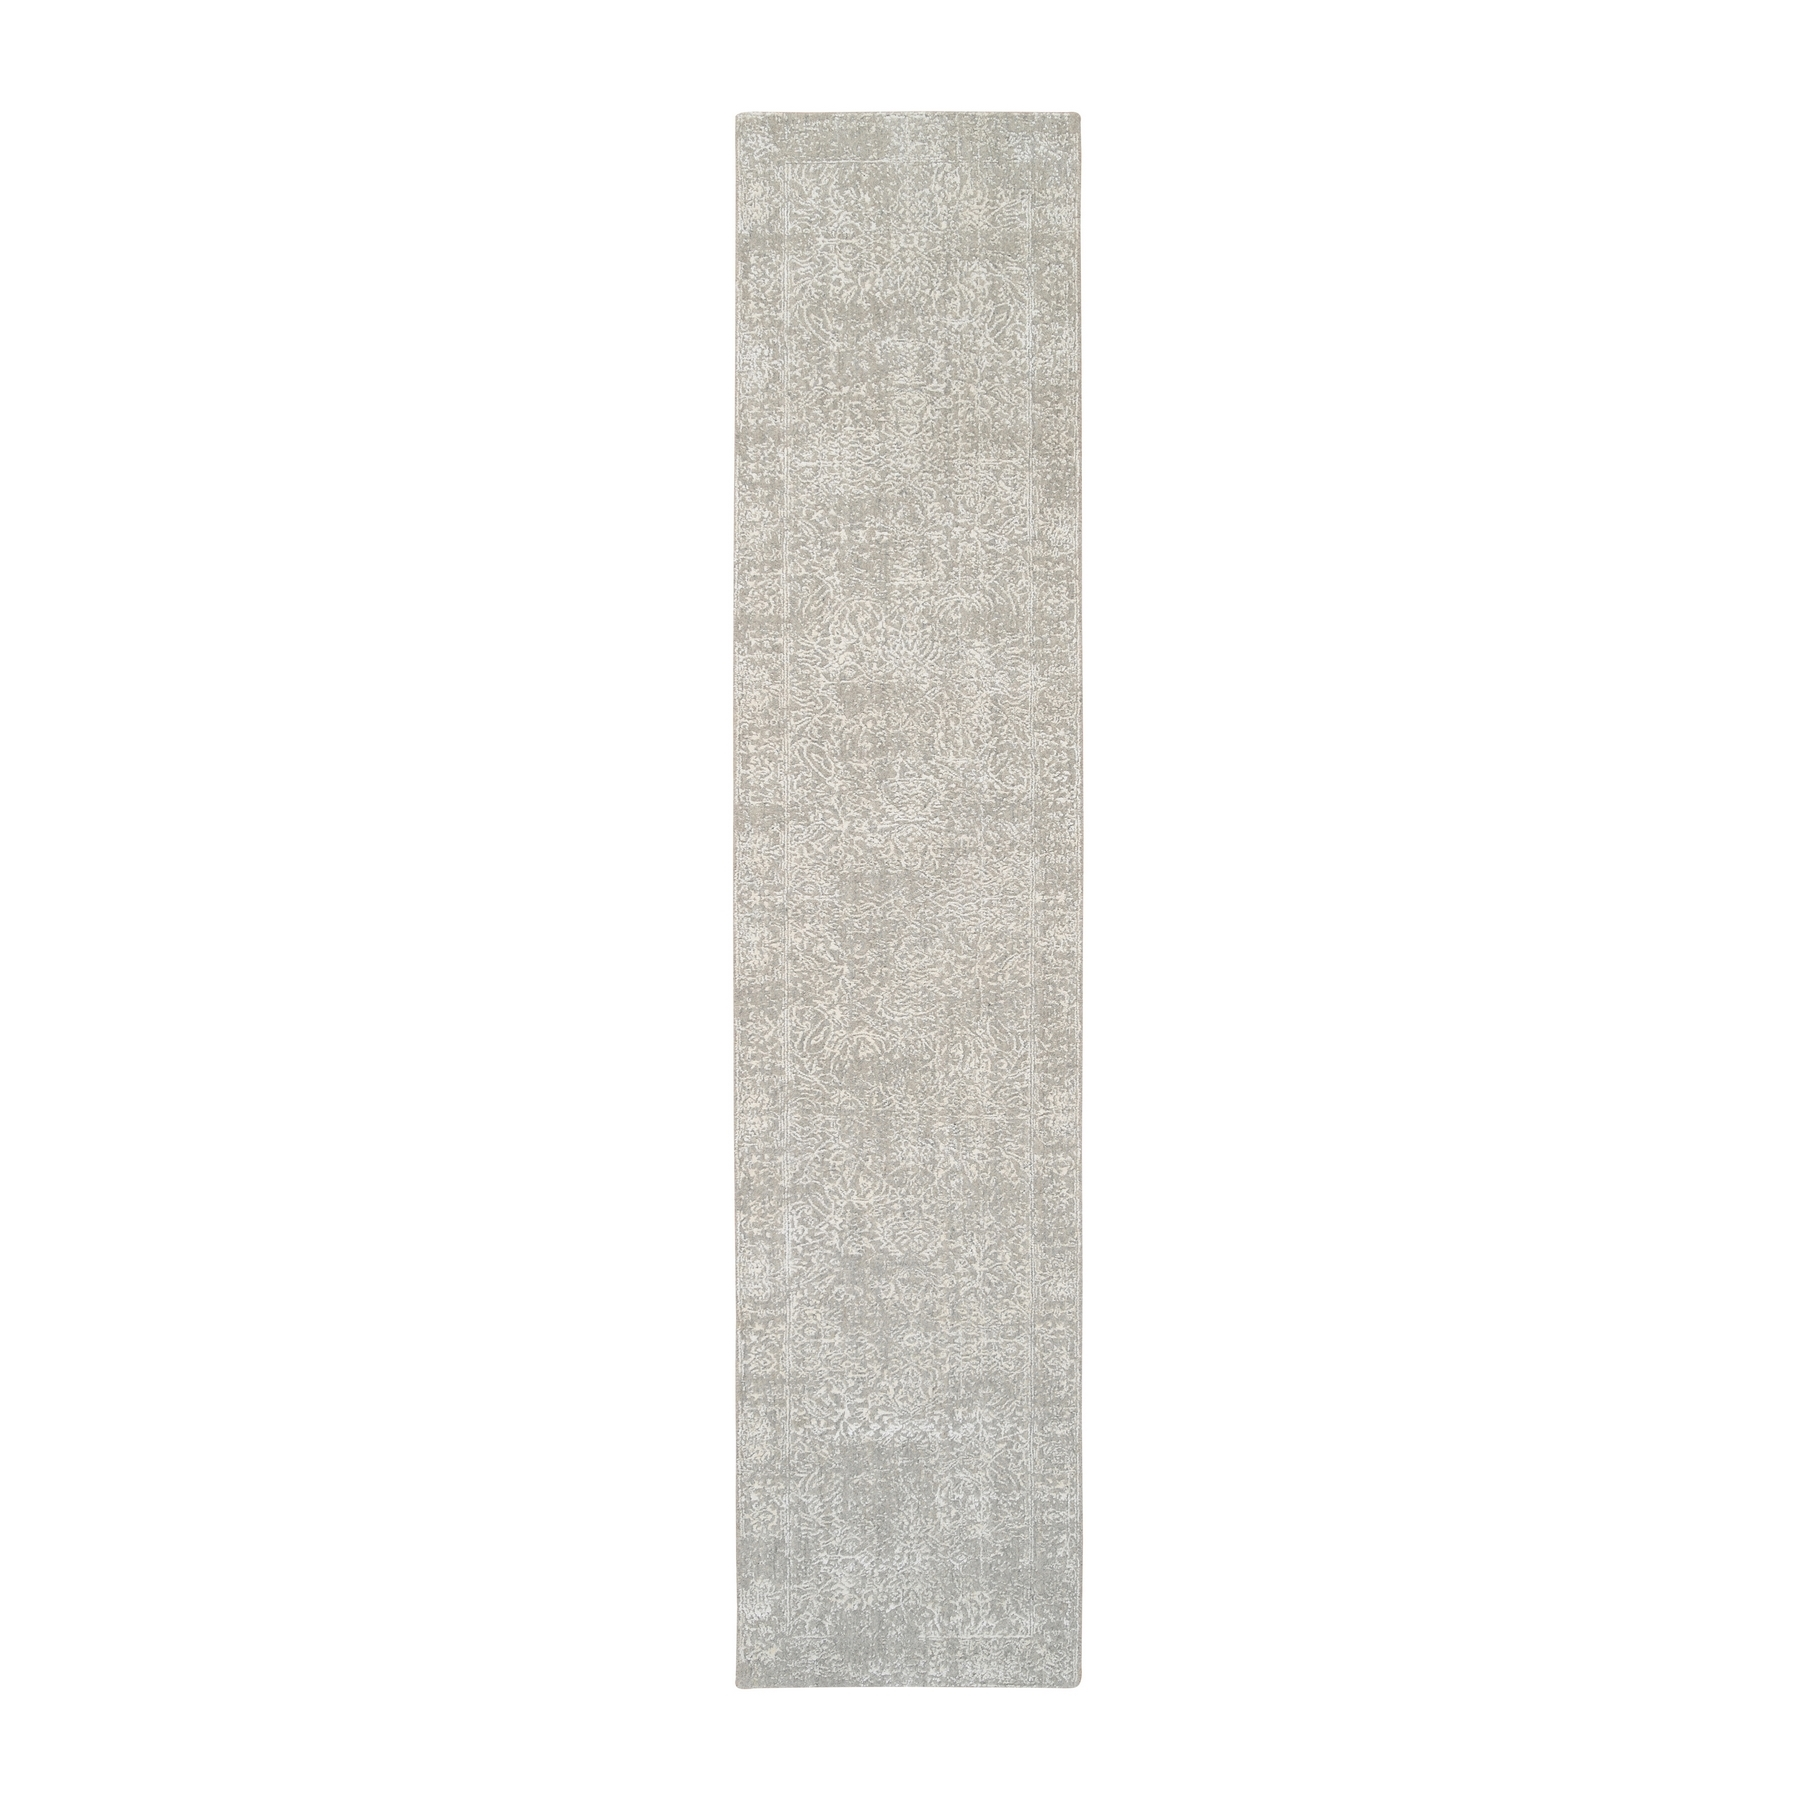 Mid Century Modern Collection Hand Loomed Grey Rug No: 1126556